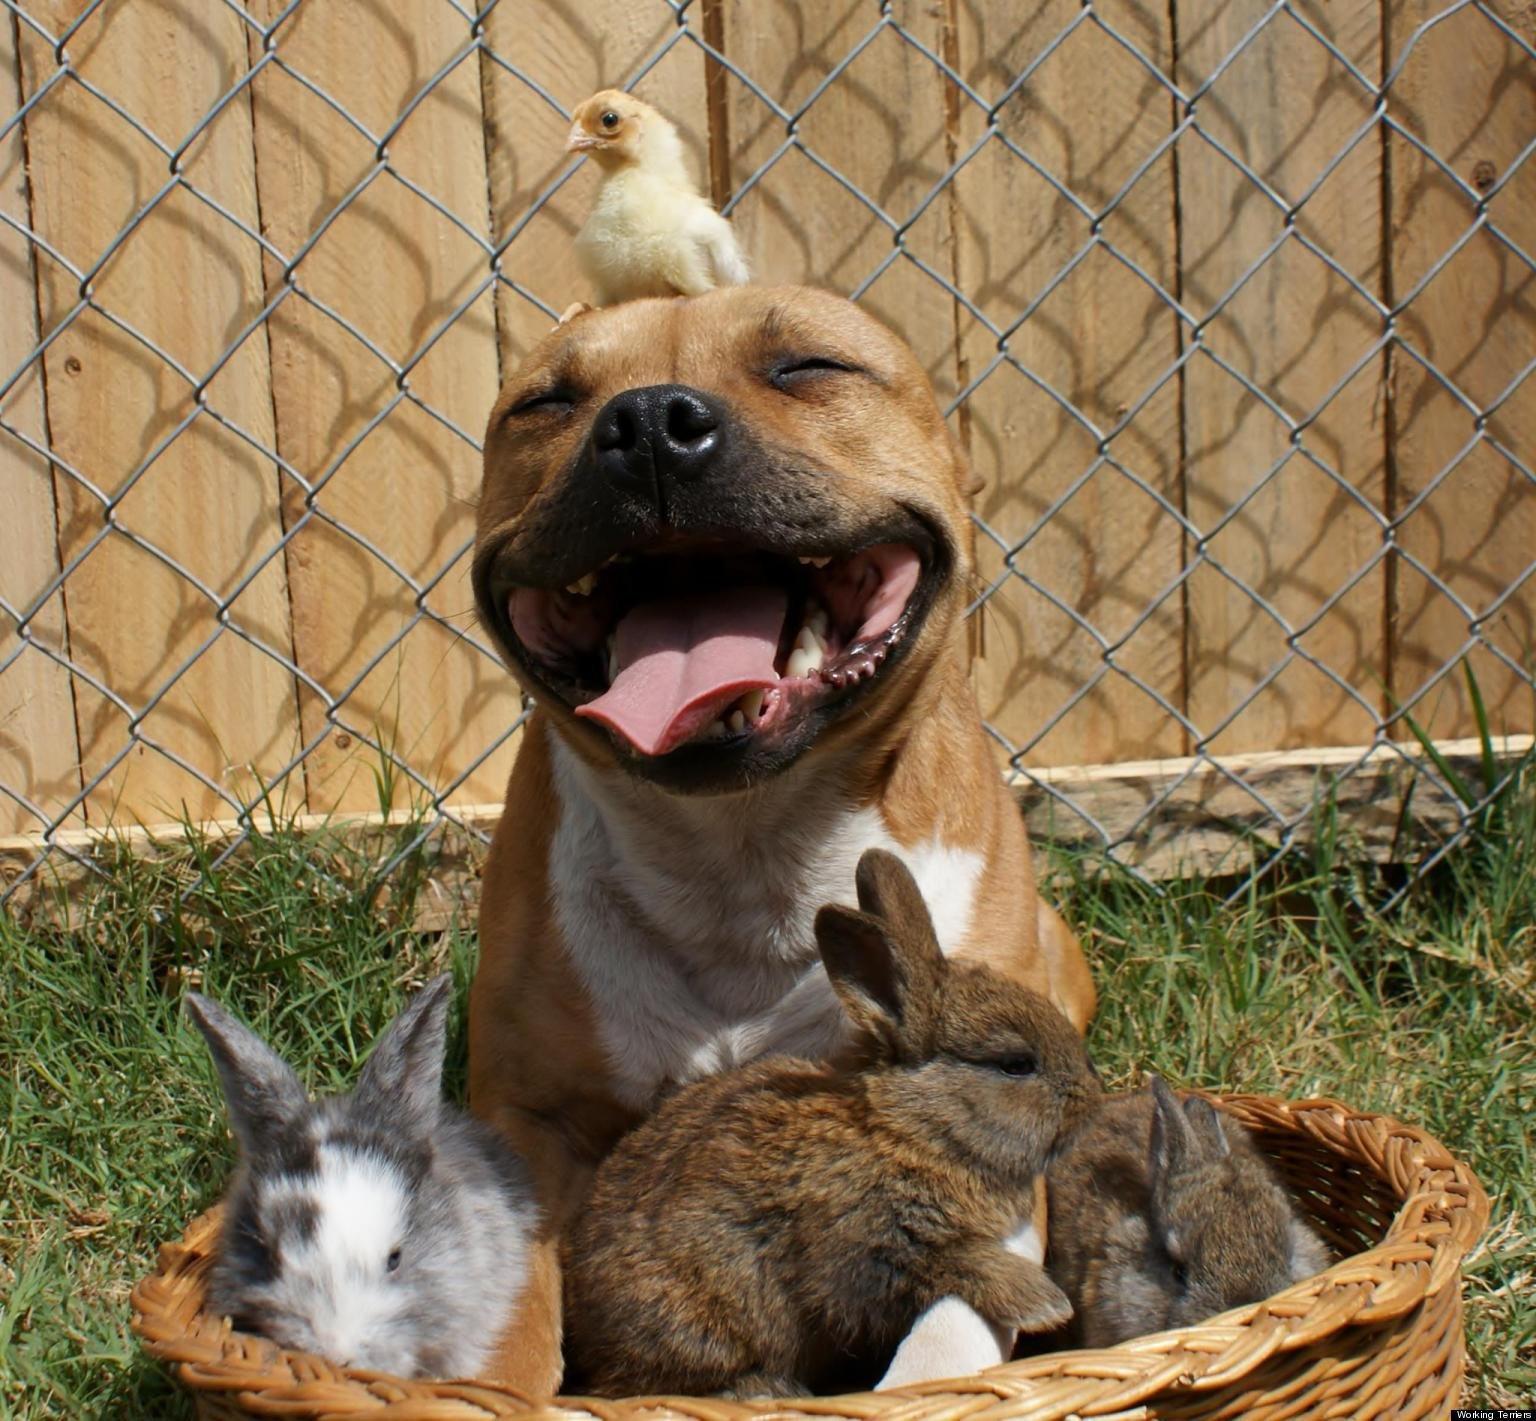 26 OF THE MOST DANGEROUS THINGS PIT BULLS DID IN 2015